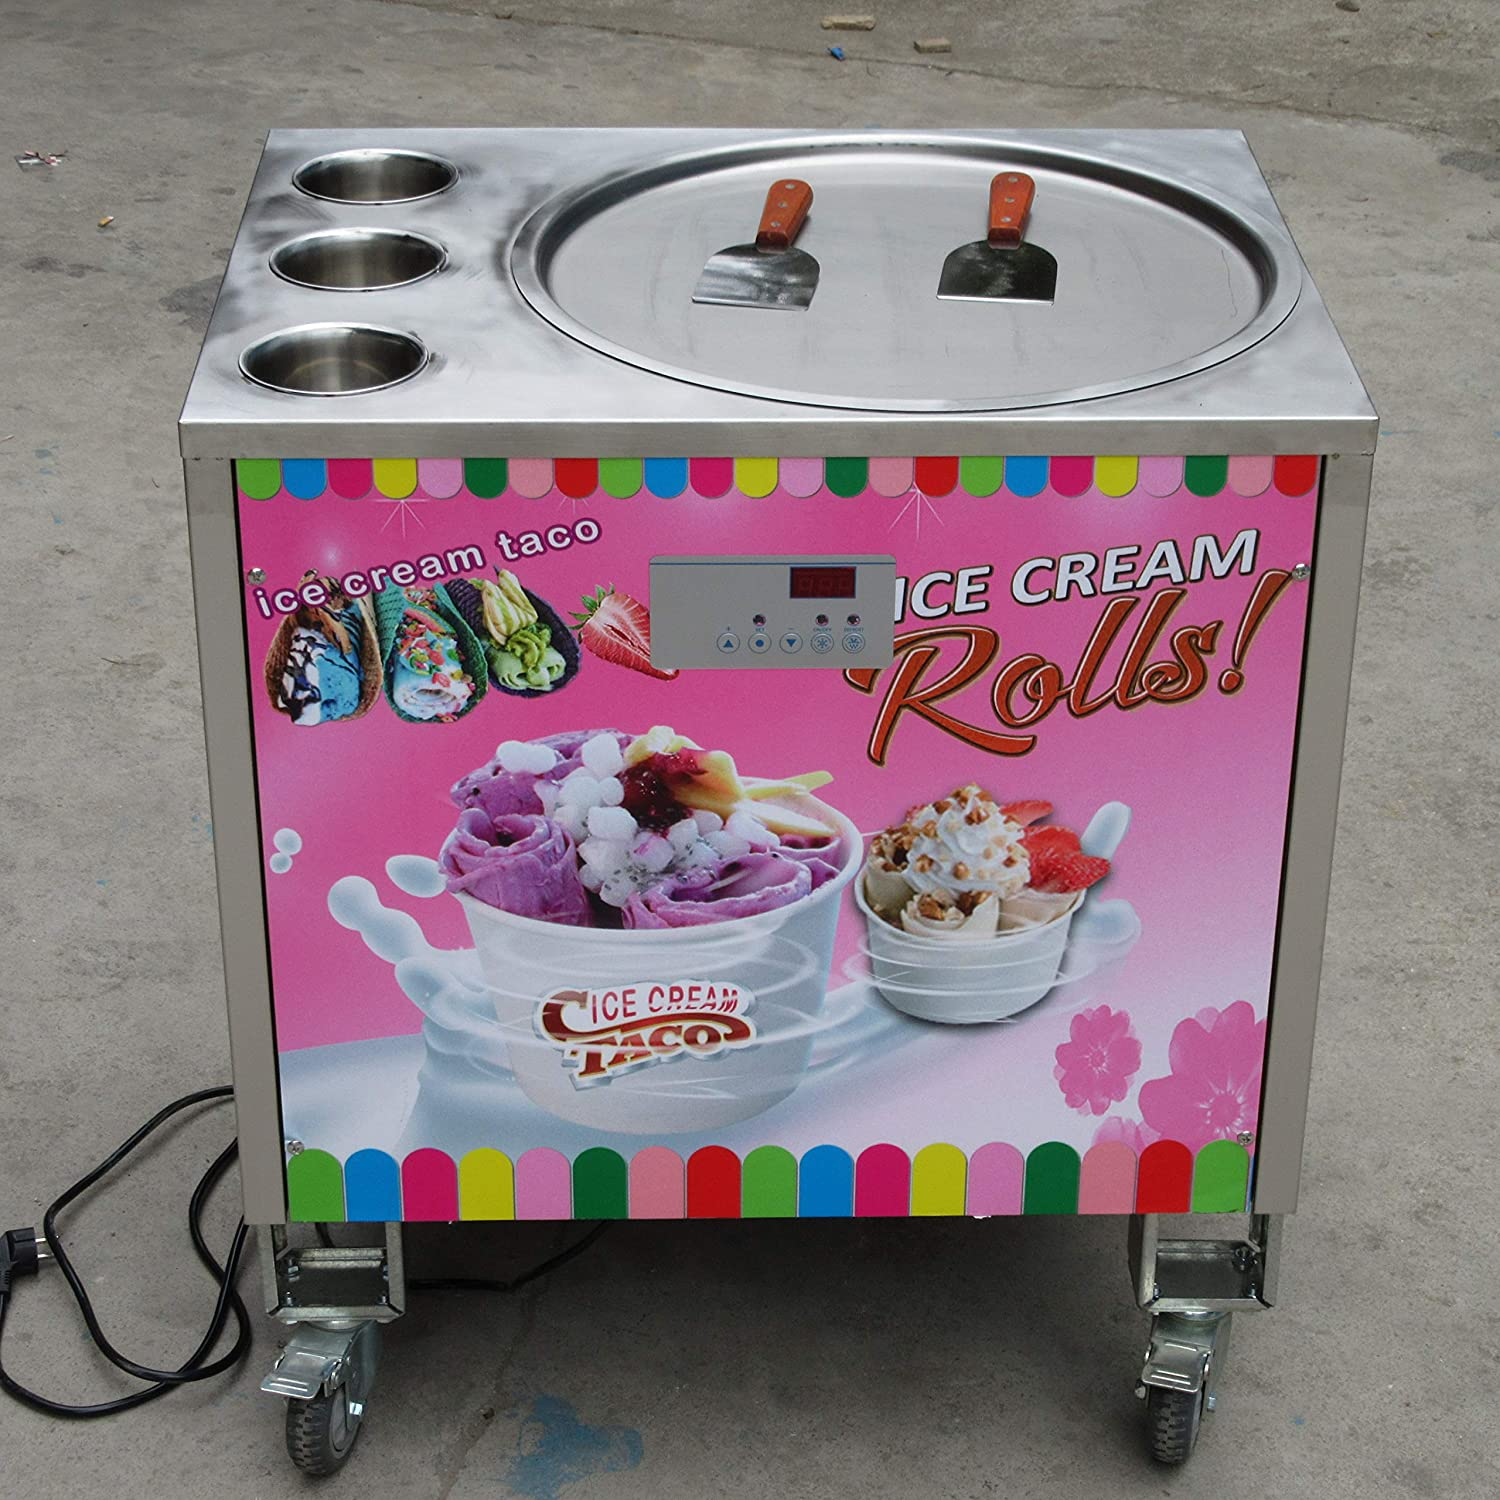 20 inches single round ice pan +3 tanks fried ice cream machine instant fry ice cream machine ice cream roll machine ice pan machine with refrigerant,AUTO DEFROST,PCB of smart AI temp. controller